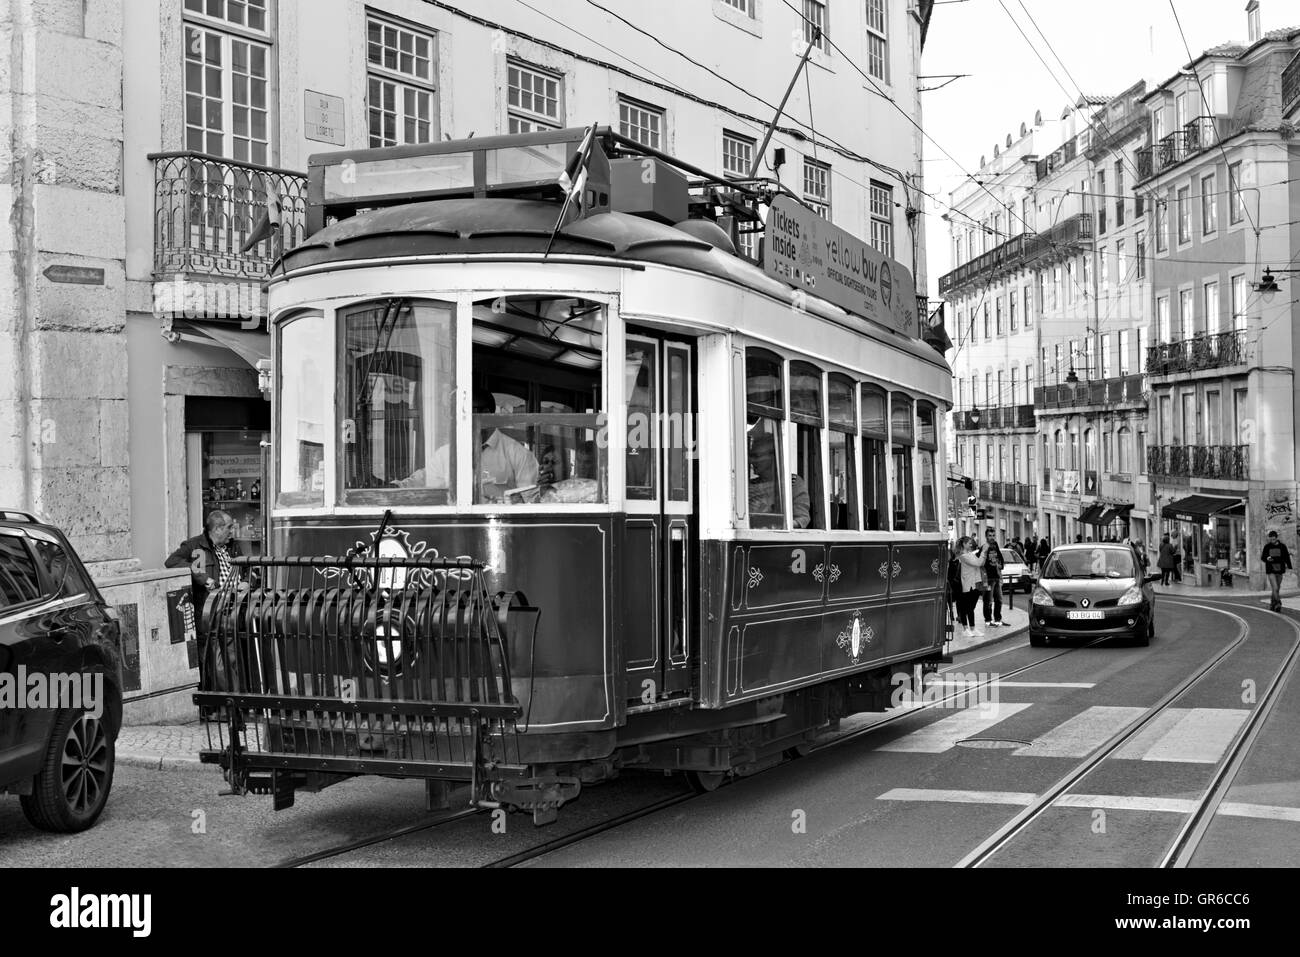 portugal lissabon historische stra enbahn in den stra en der innenstadt von lissabon bw. Black Bedroom Furniture Sets. Home Design Ideas